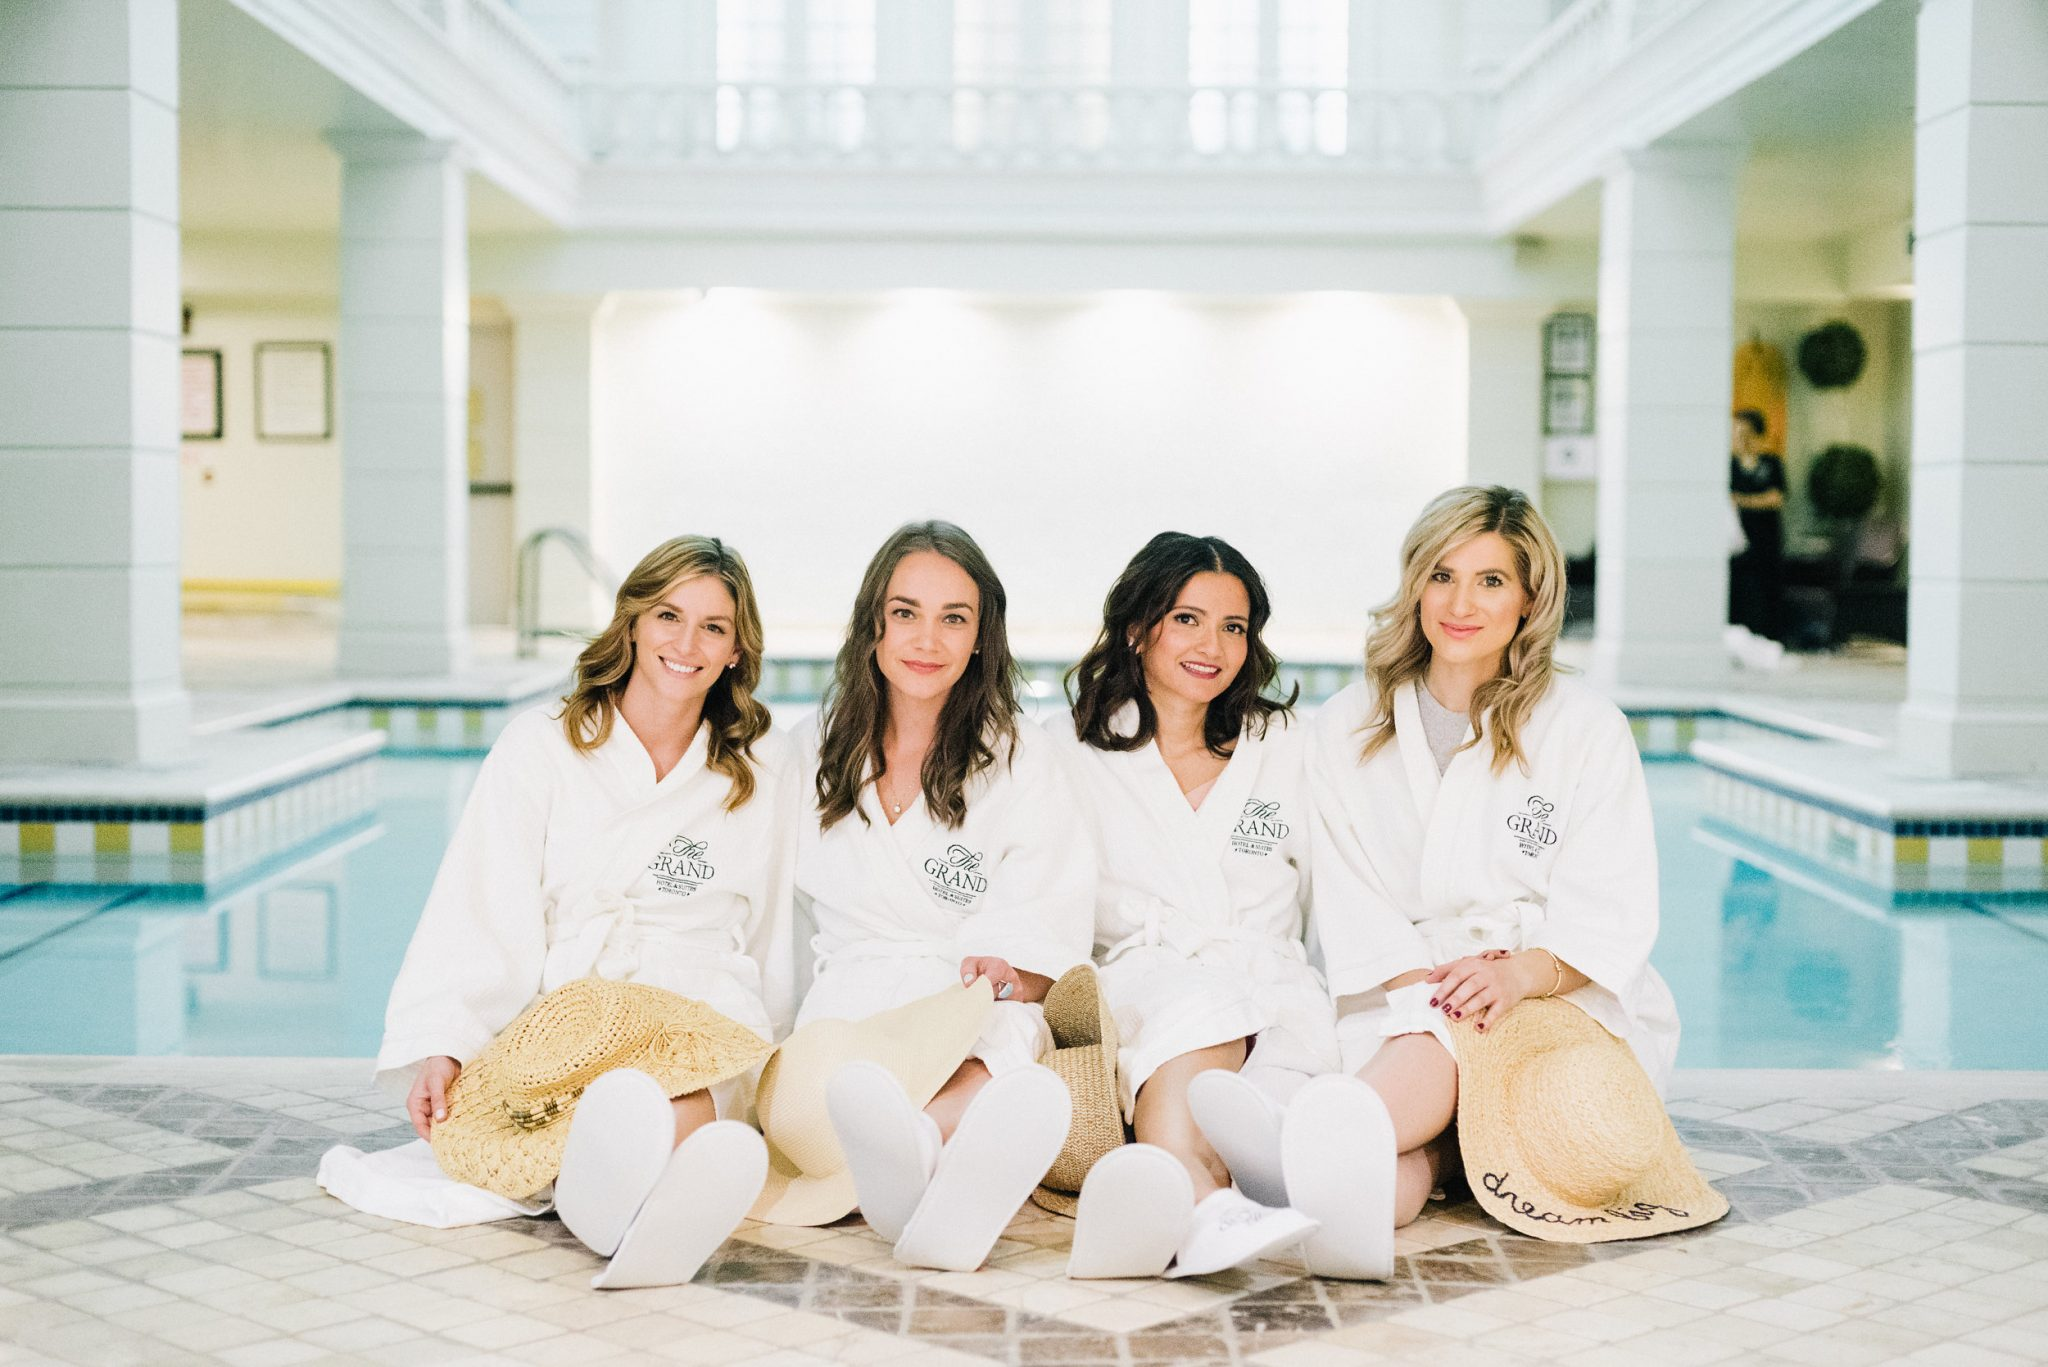 Ultimate Girls weekend at the Grand Hotel Toronto